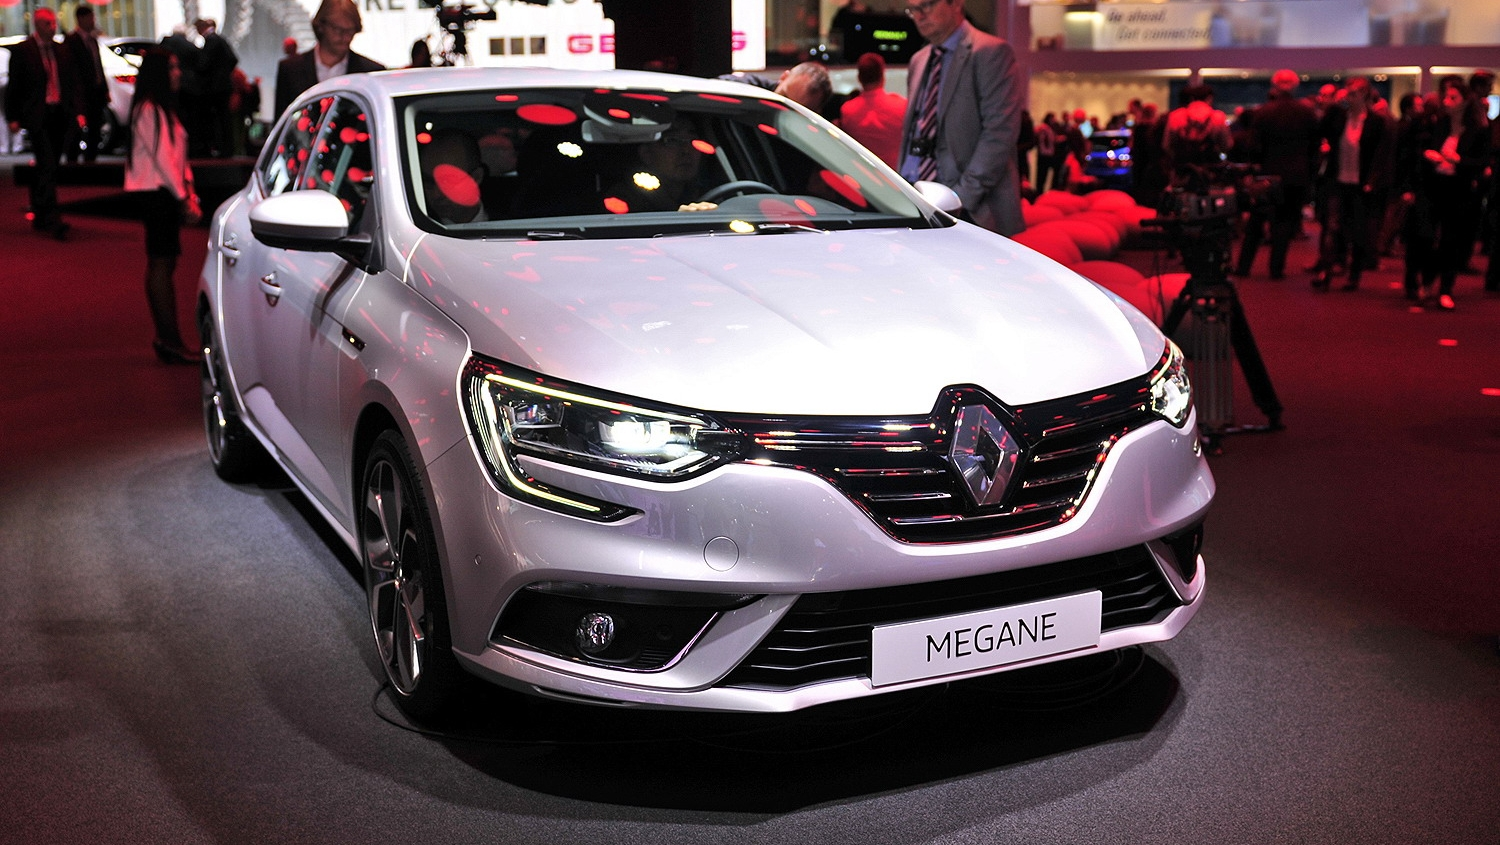 2016 renault m gane review top speed. Black Bedroom Furniture Sets. Home Design Ideas